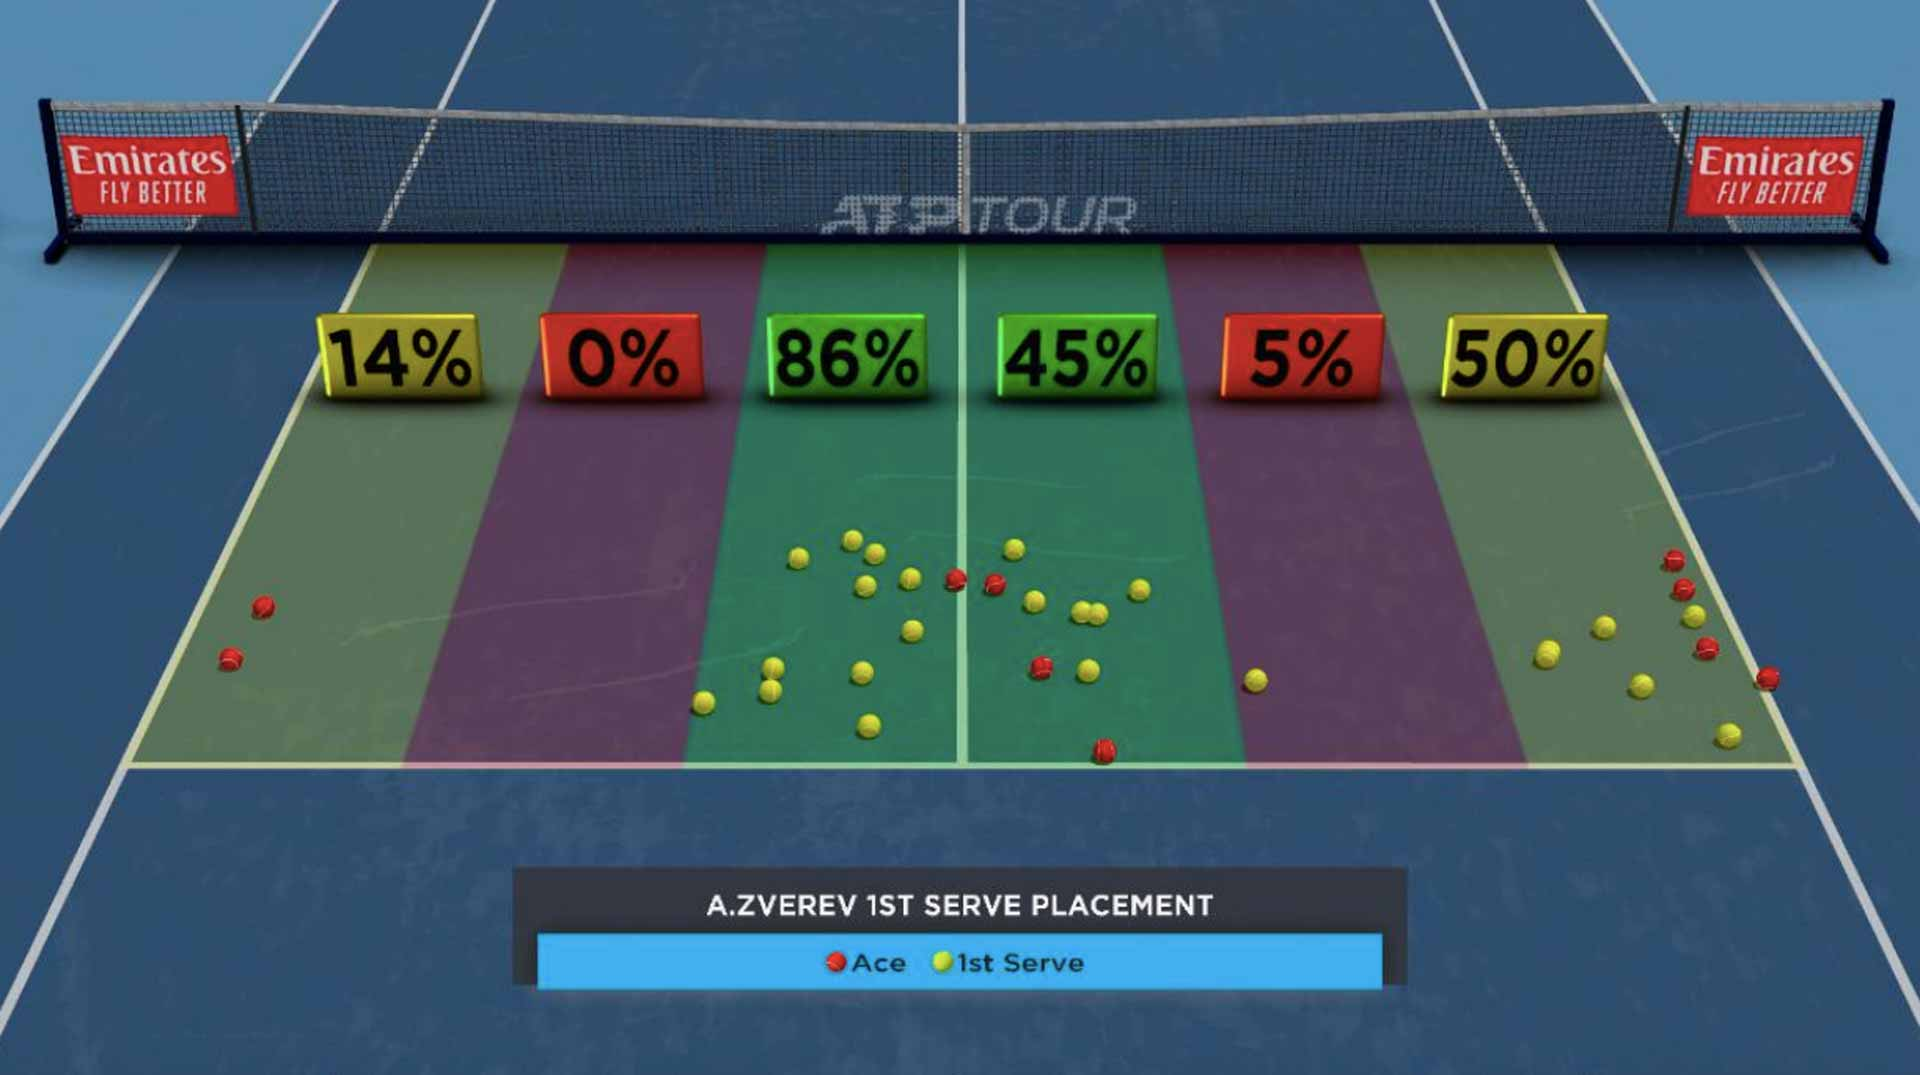 Zverev First-Serve Placement